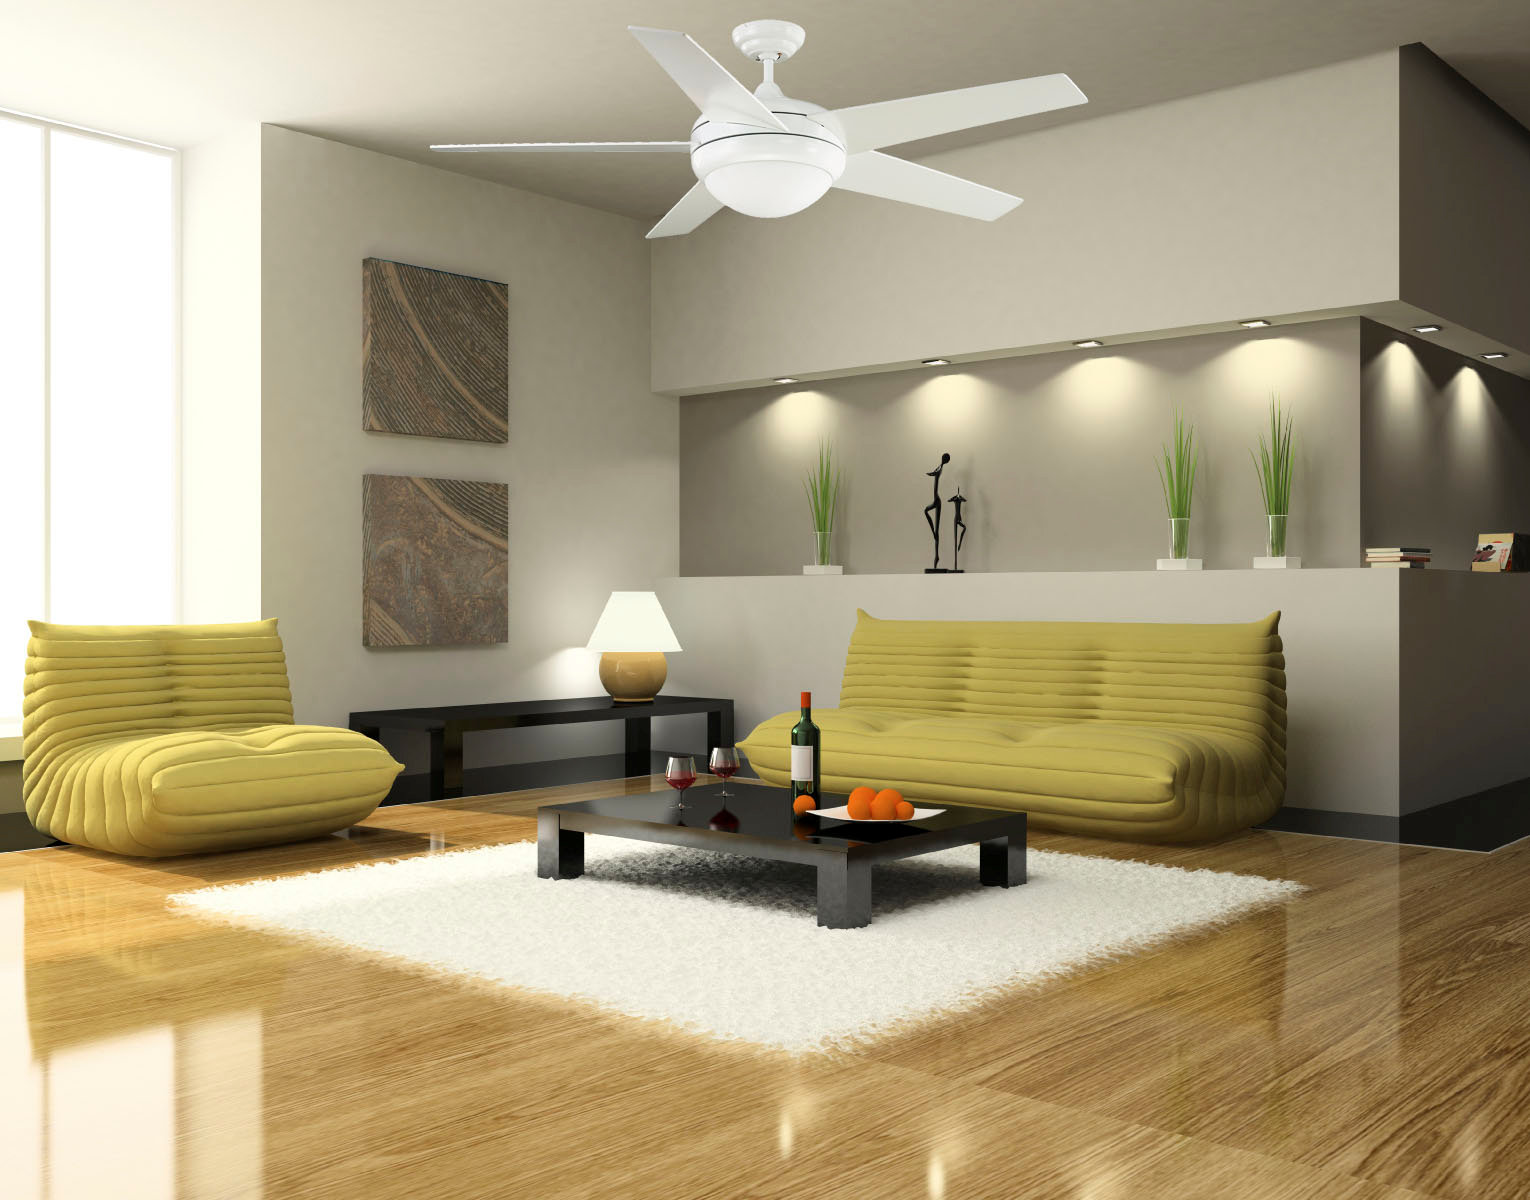 https://www.firstclasselectricnj.com/userfiles/image/ceiling%20fan.jpg